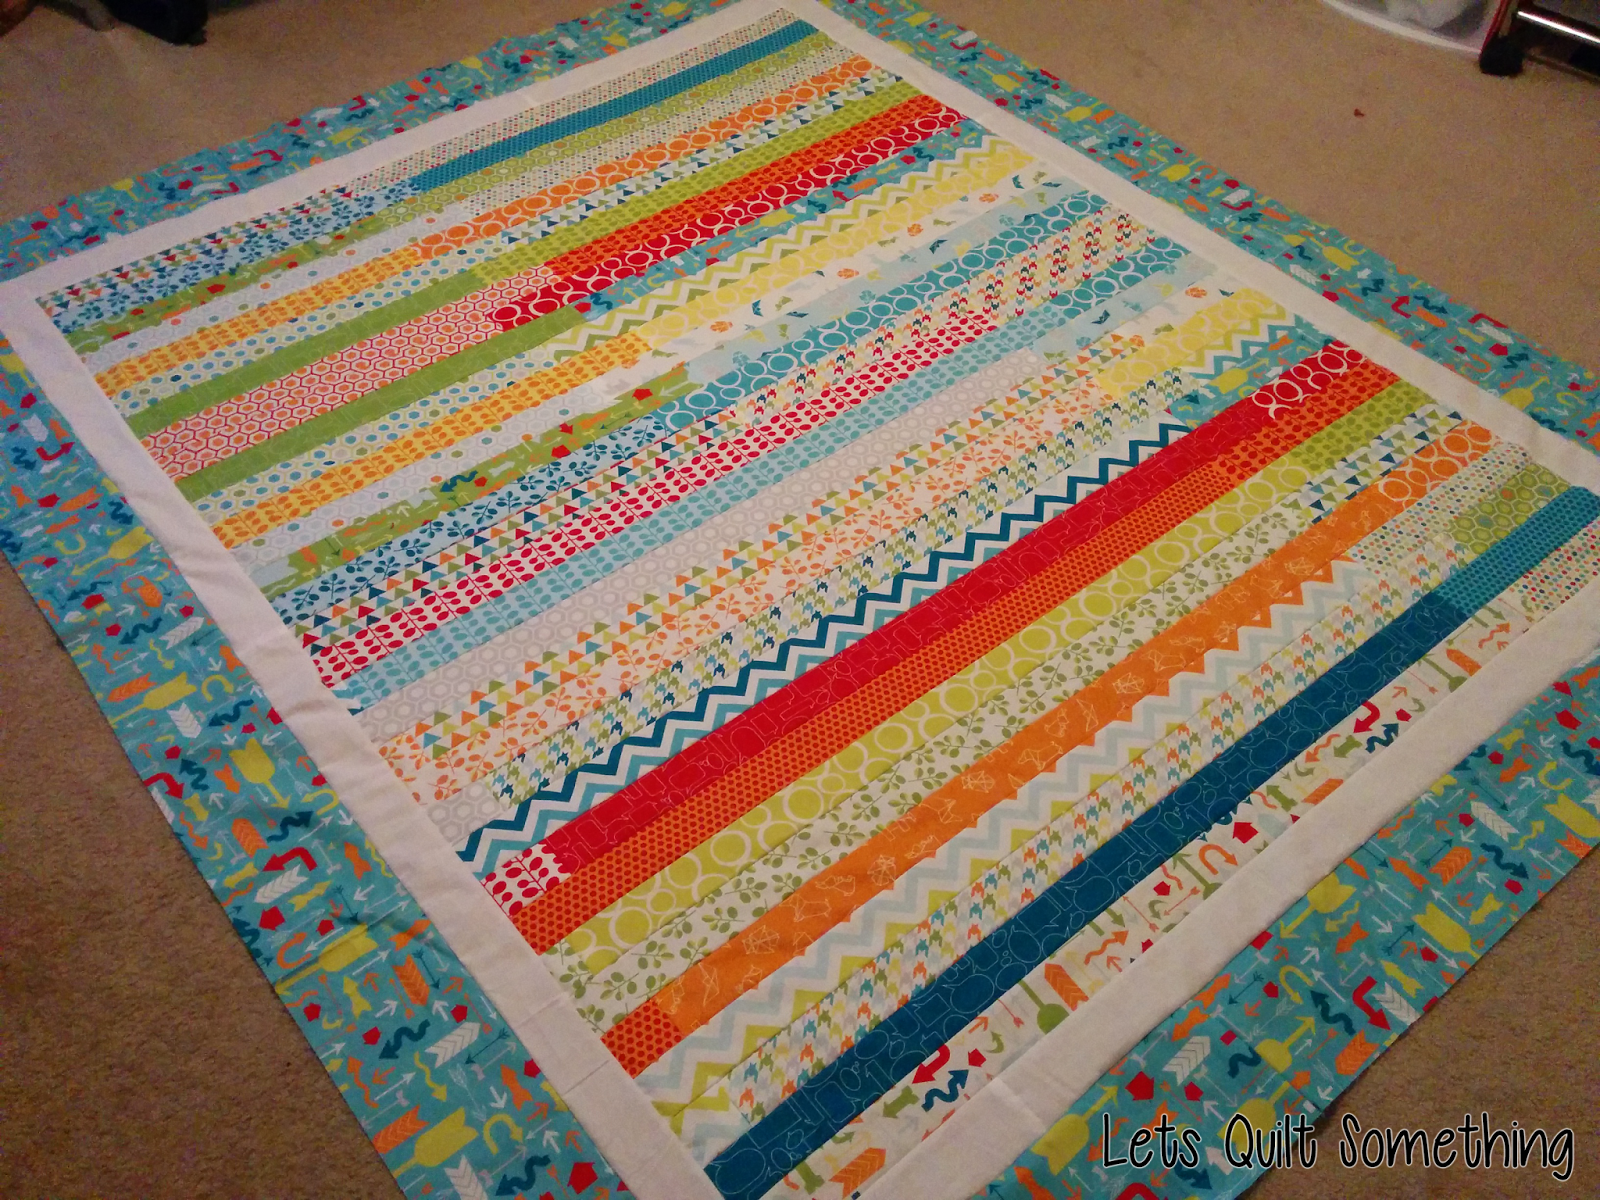 Lets Quilt Something: Mixed Bag Studio - Jelly Roll Race Quilt Pattern